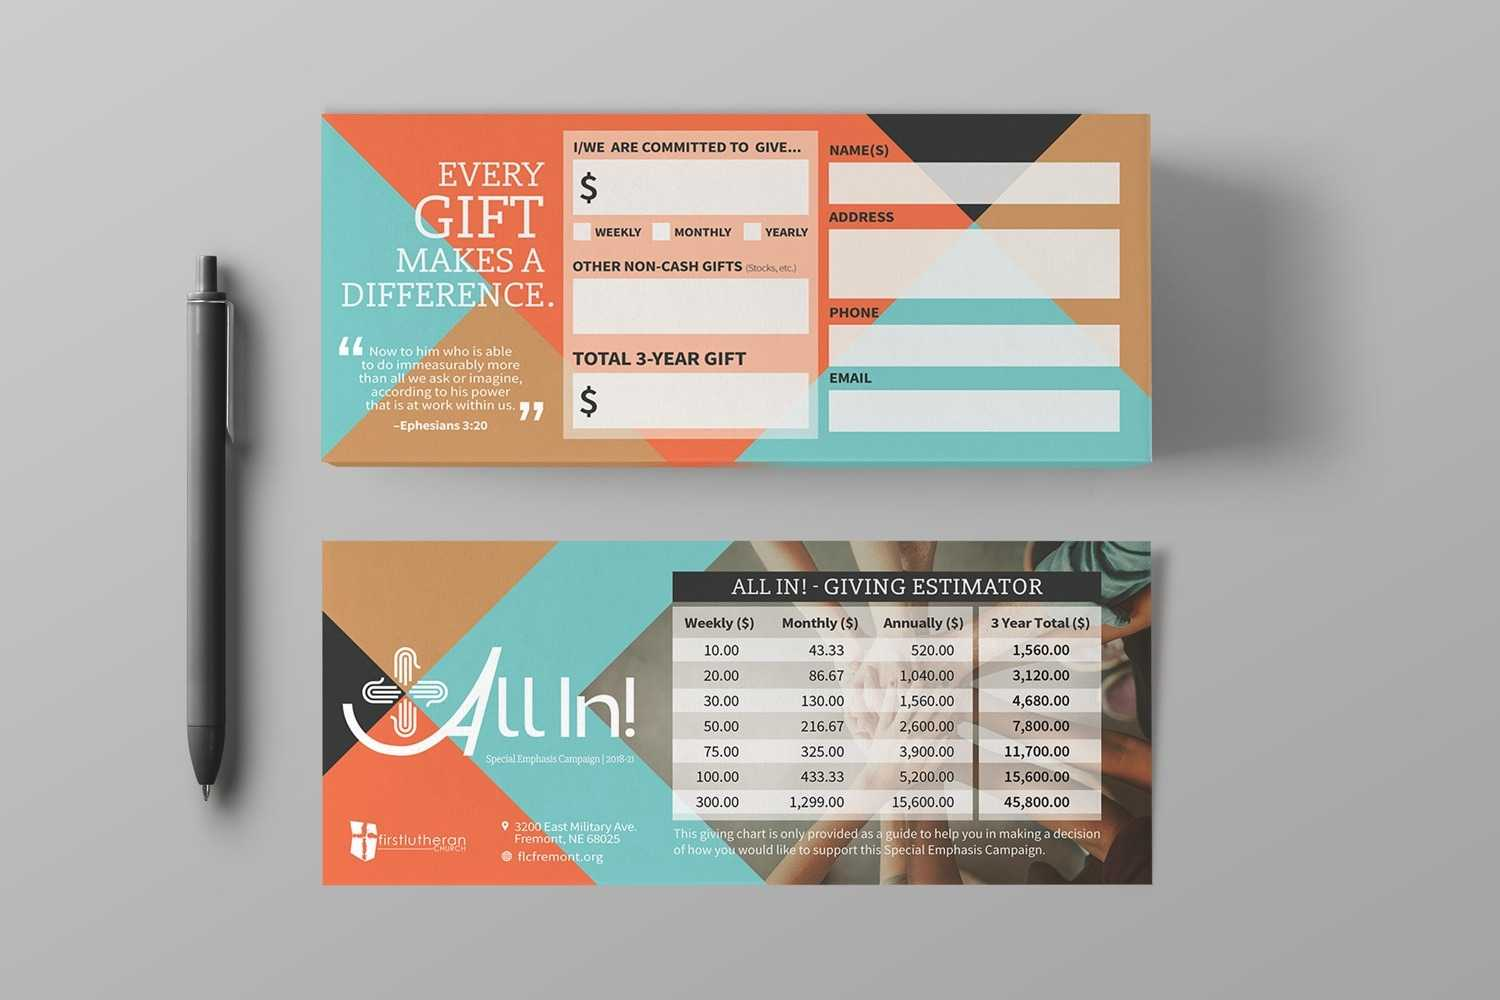 Pledge Cards & Commitment Cards | Church Campaign Design Inside Pledge Card Template For Church